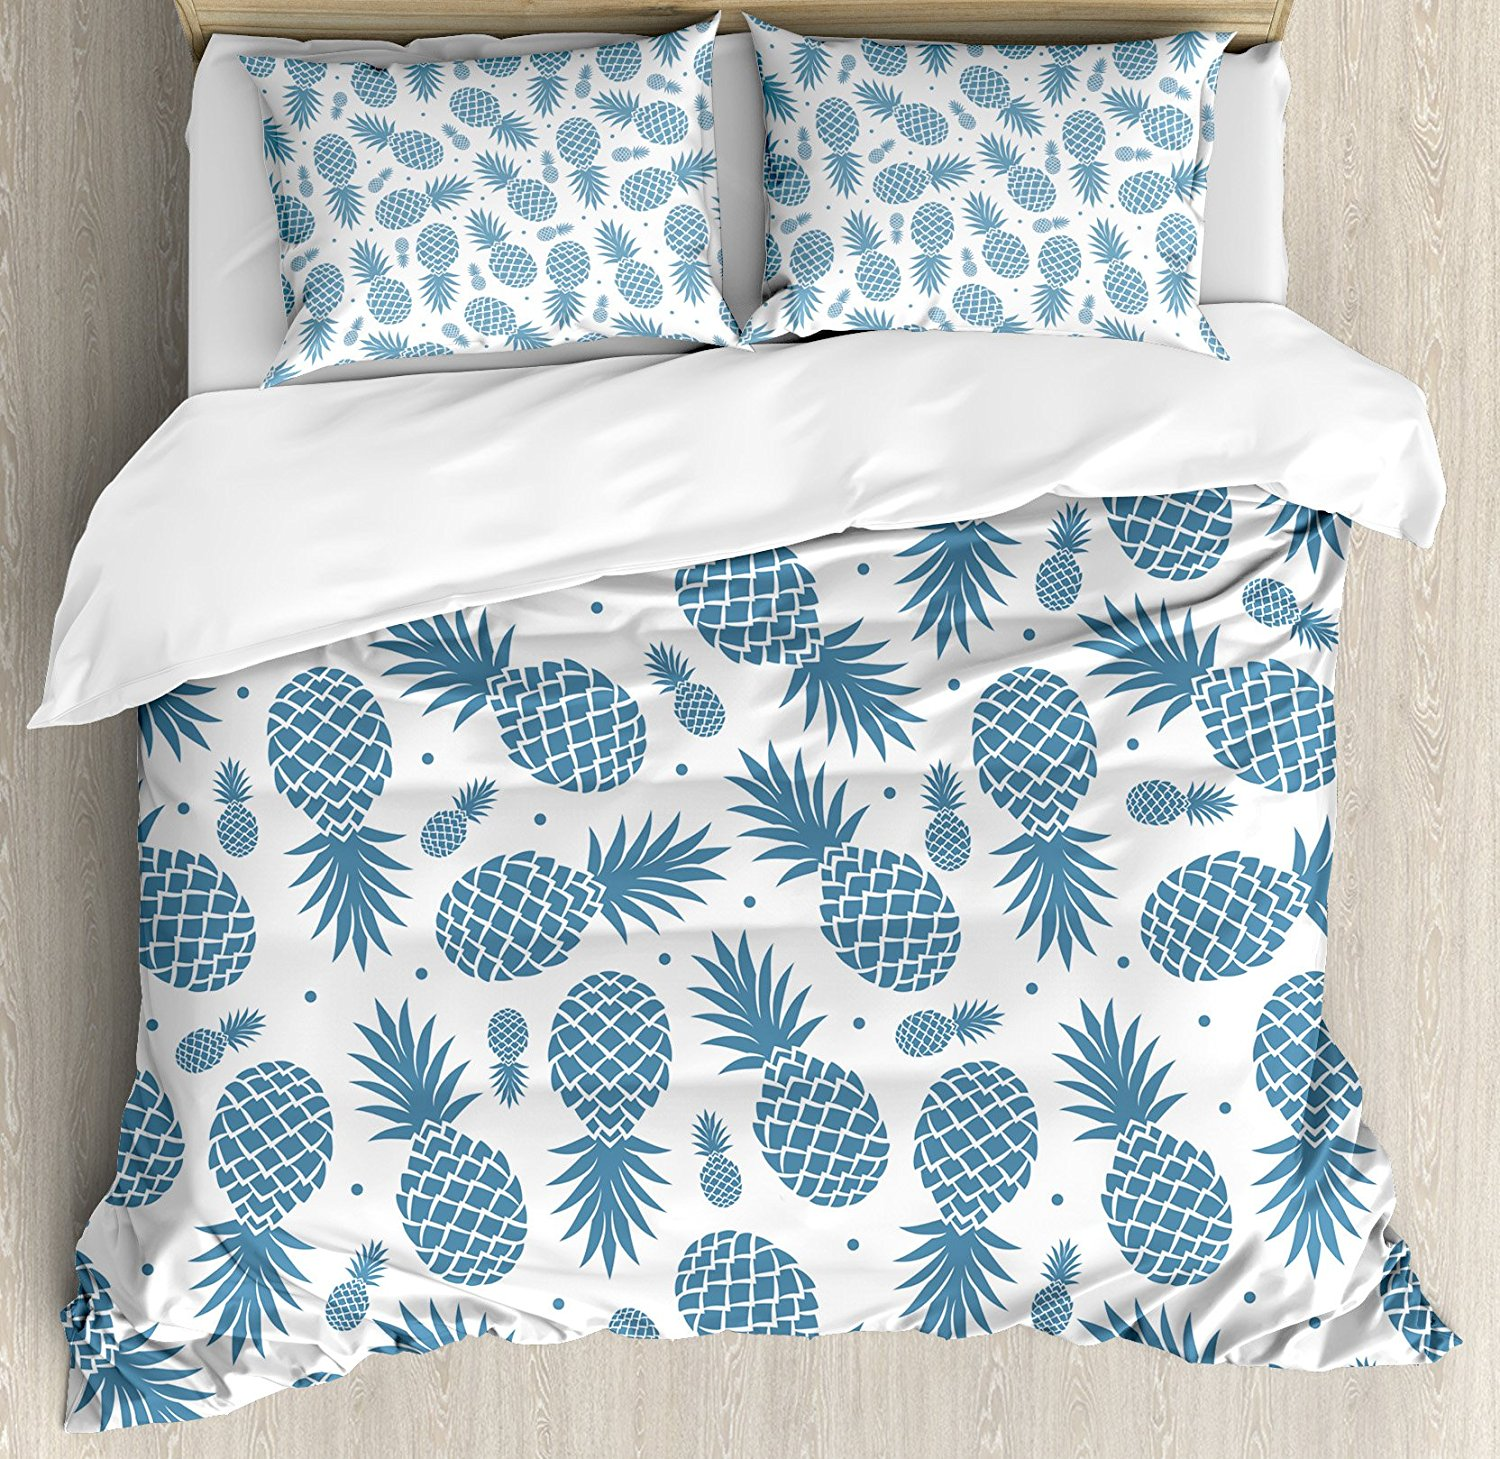 Pineapple Duvet Cover Set Island Themed Minimalistic Multi-Sized Tropic Fruity Pineapple Printed Vintage Blue White